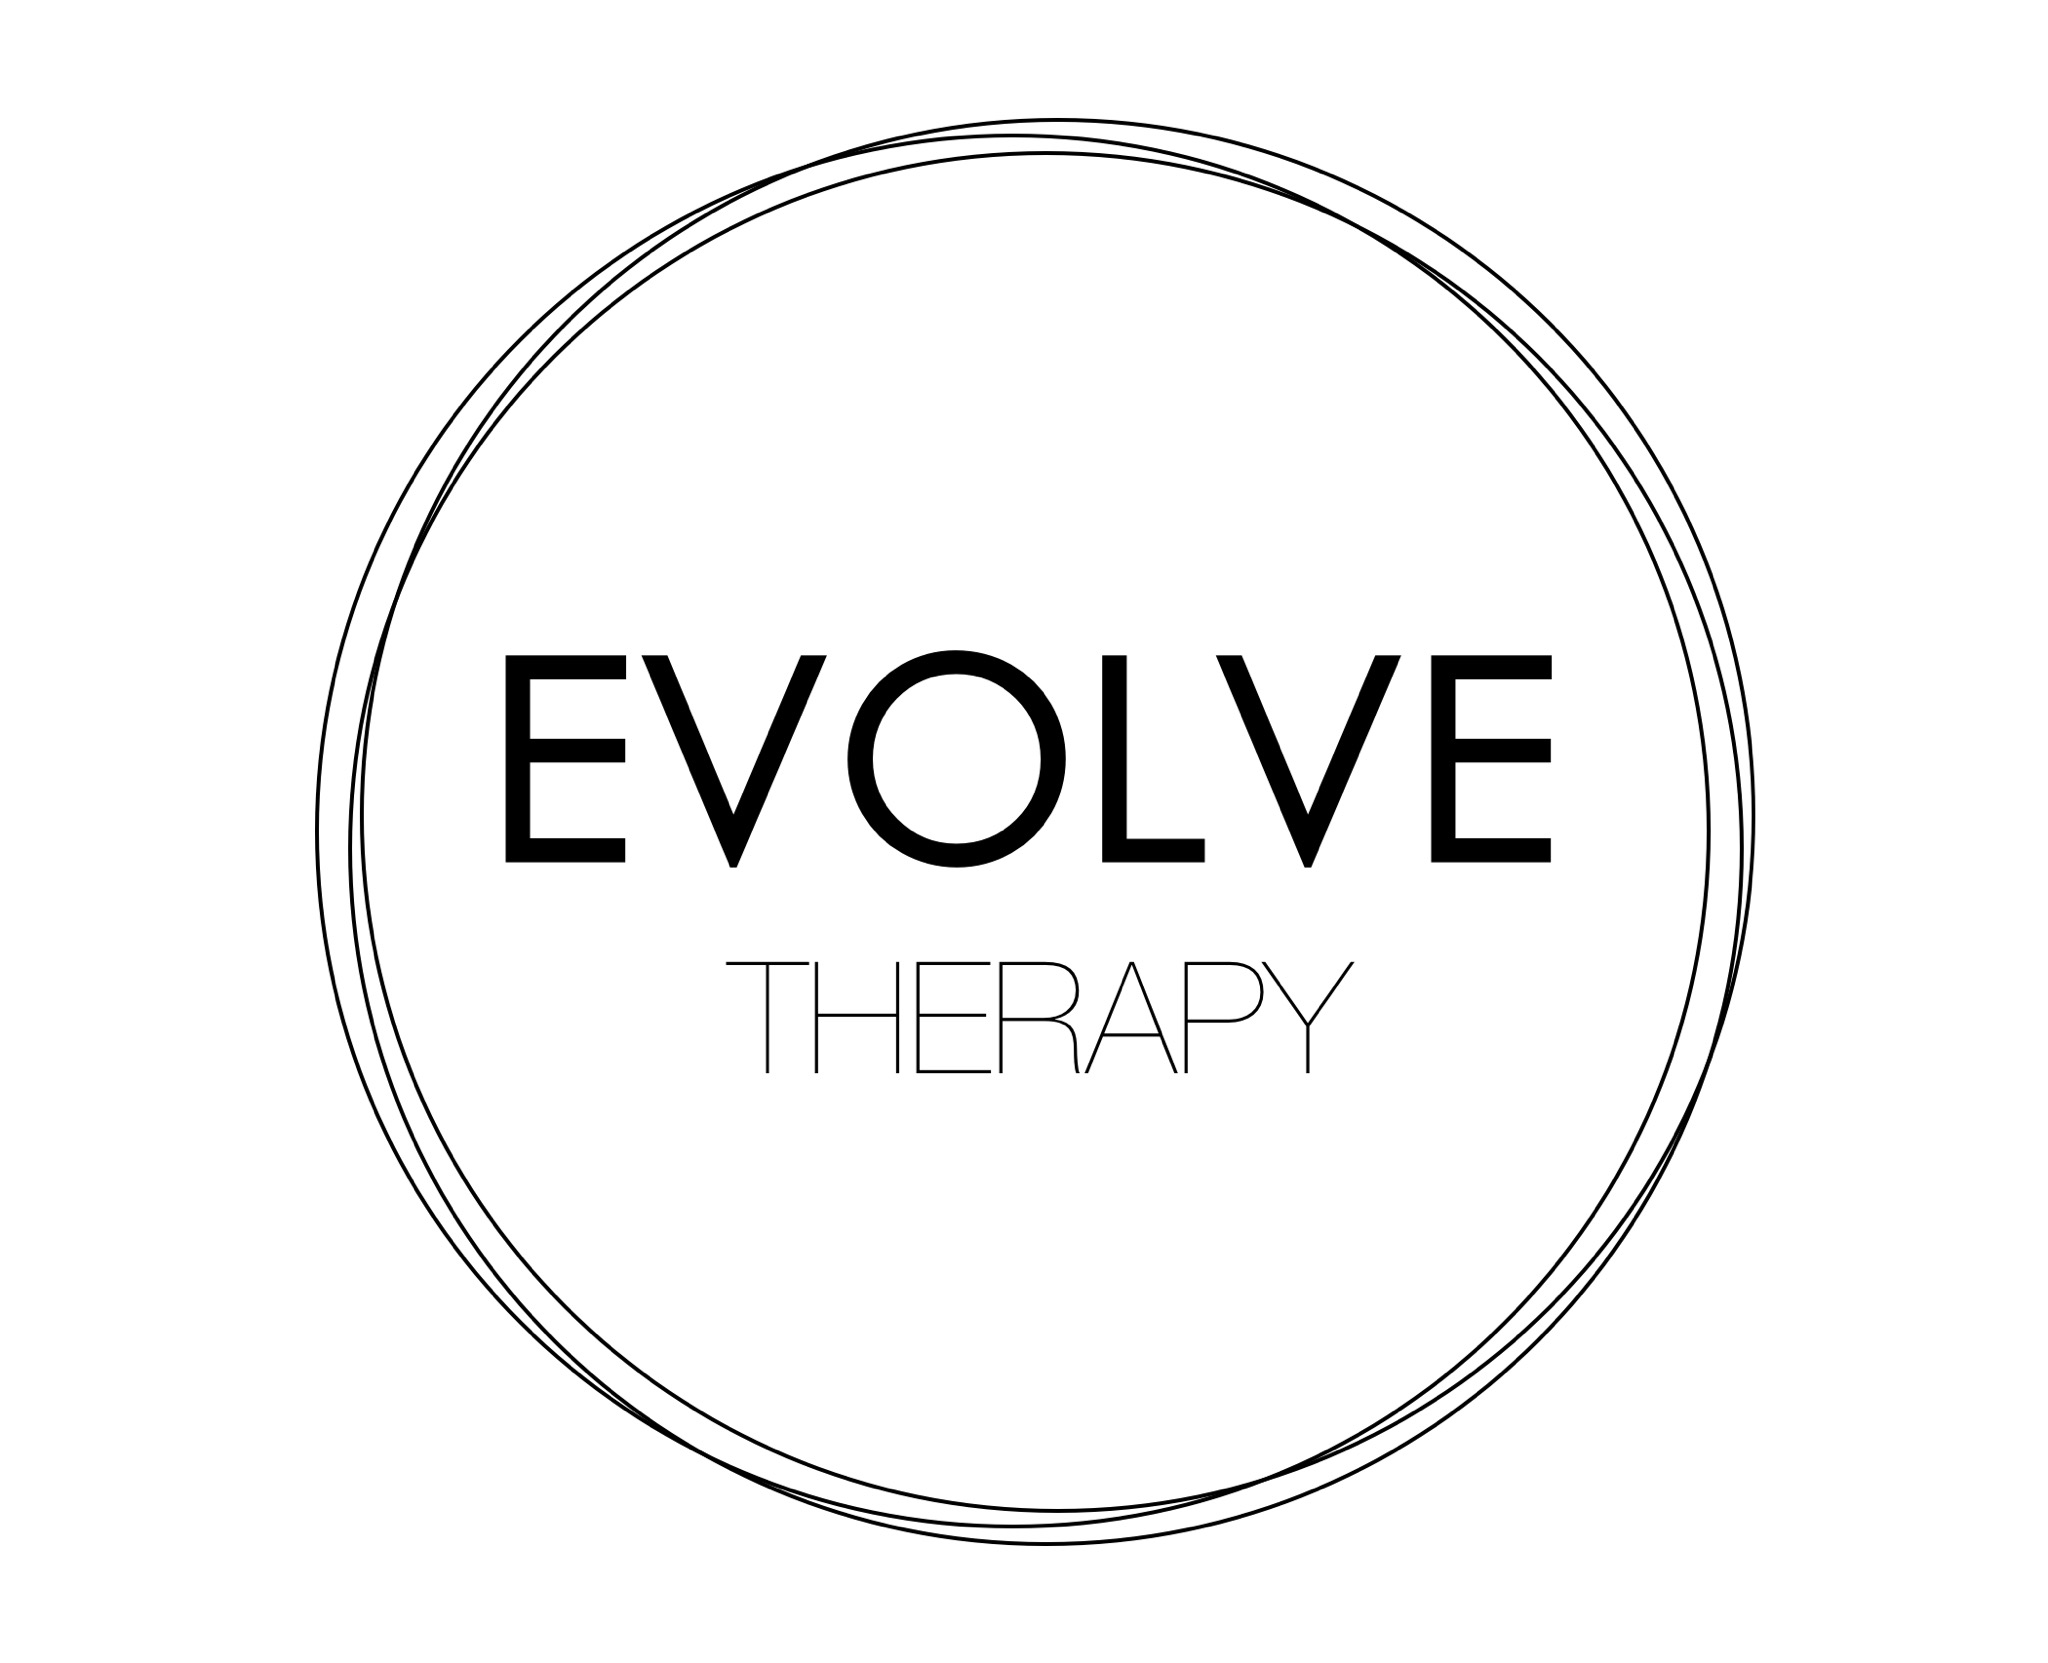 Meet Marci & Grace ofEvolve Therapy - Specific Methods: Mindfulness, Mind-Body Connection, Strengths-BasedWhy did you become a therapist?As co-founders of Evolve Therapy, we (Marci Lawson & Grace Secker) work passionately with our clients to help obtain the relief you need. We love what we do, and a large portion of that is due to the clients we attract. Working with people who are committed to the evolution of healing is what wakes us up in the morning. From our personal therapeutic experiences of healing, we know healing is possible.What do you think you would be if you were not a therapist?If we weren't therapists, we would be furry house pets. Marci would be a playful, sun-bathing kitty, and Grace would be a cuddly, yet energetic pup.What is the best way to get in contact with you?marci@evolvetherapyatx.comgrace@evolvetherapyatx.com